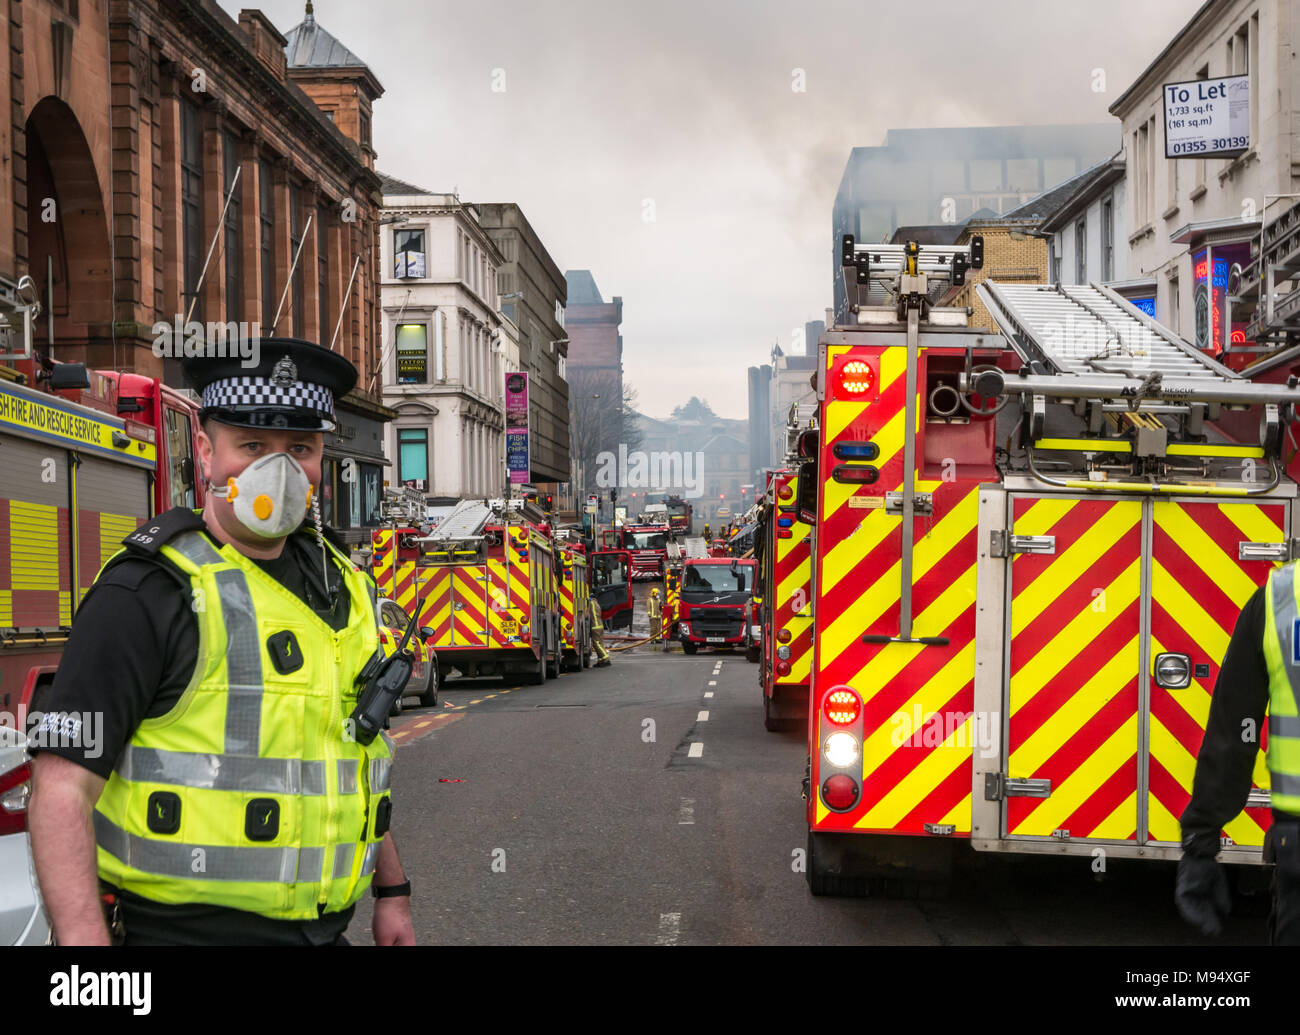 Hope Street, Glasgow, Scotlnad, United Kingdom, 22nd March 2018. A major fire involving multiple buildings closes streets in central Glasgow. Fire engines attend the incident. A policeman wears a mask due to the risk of asbestos from the smoke Stock Photo